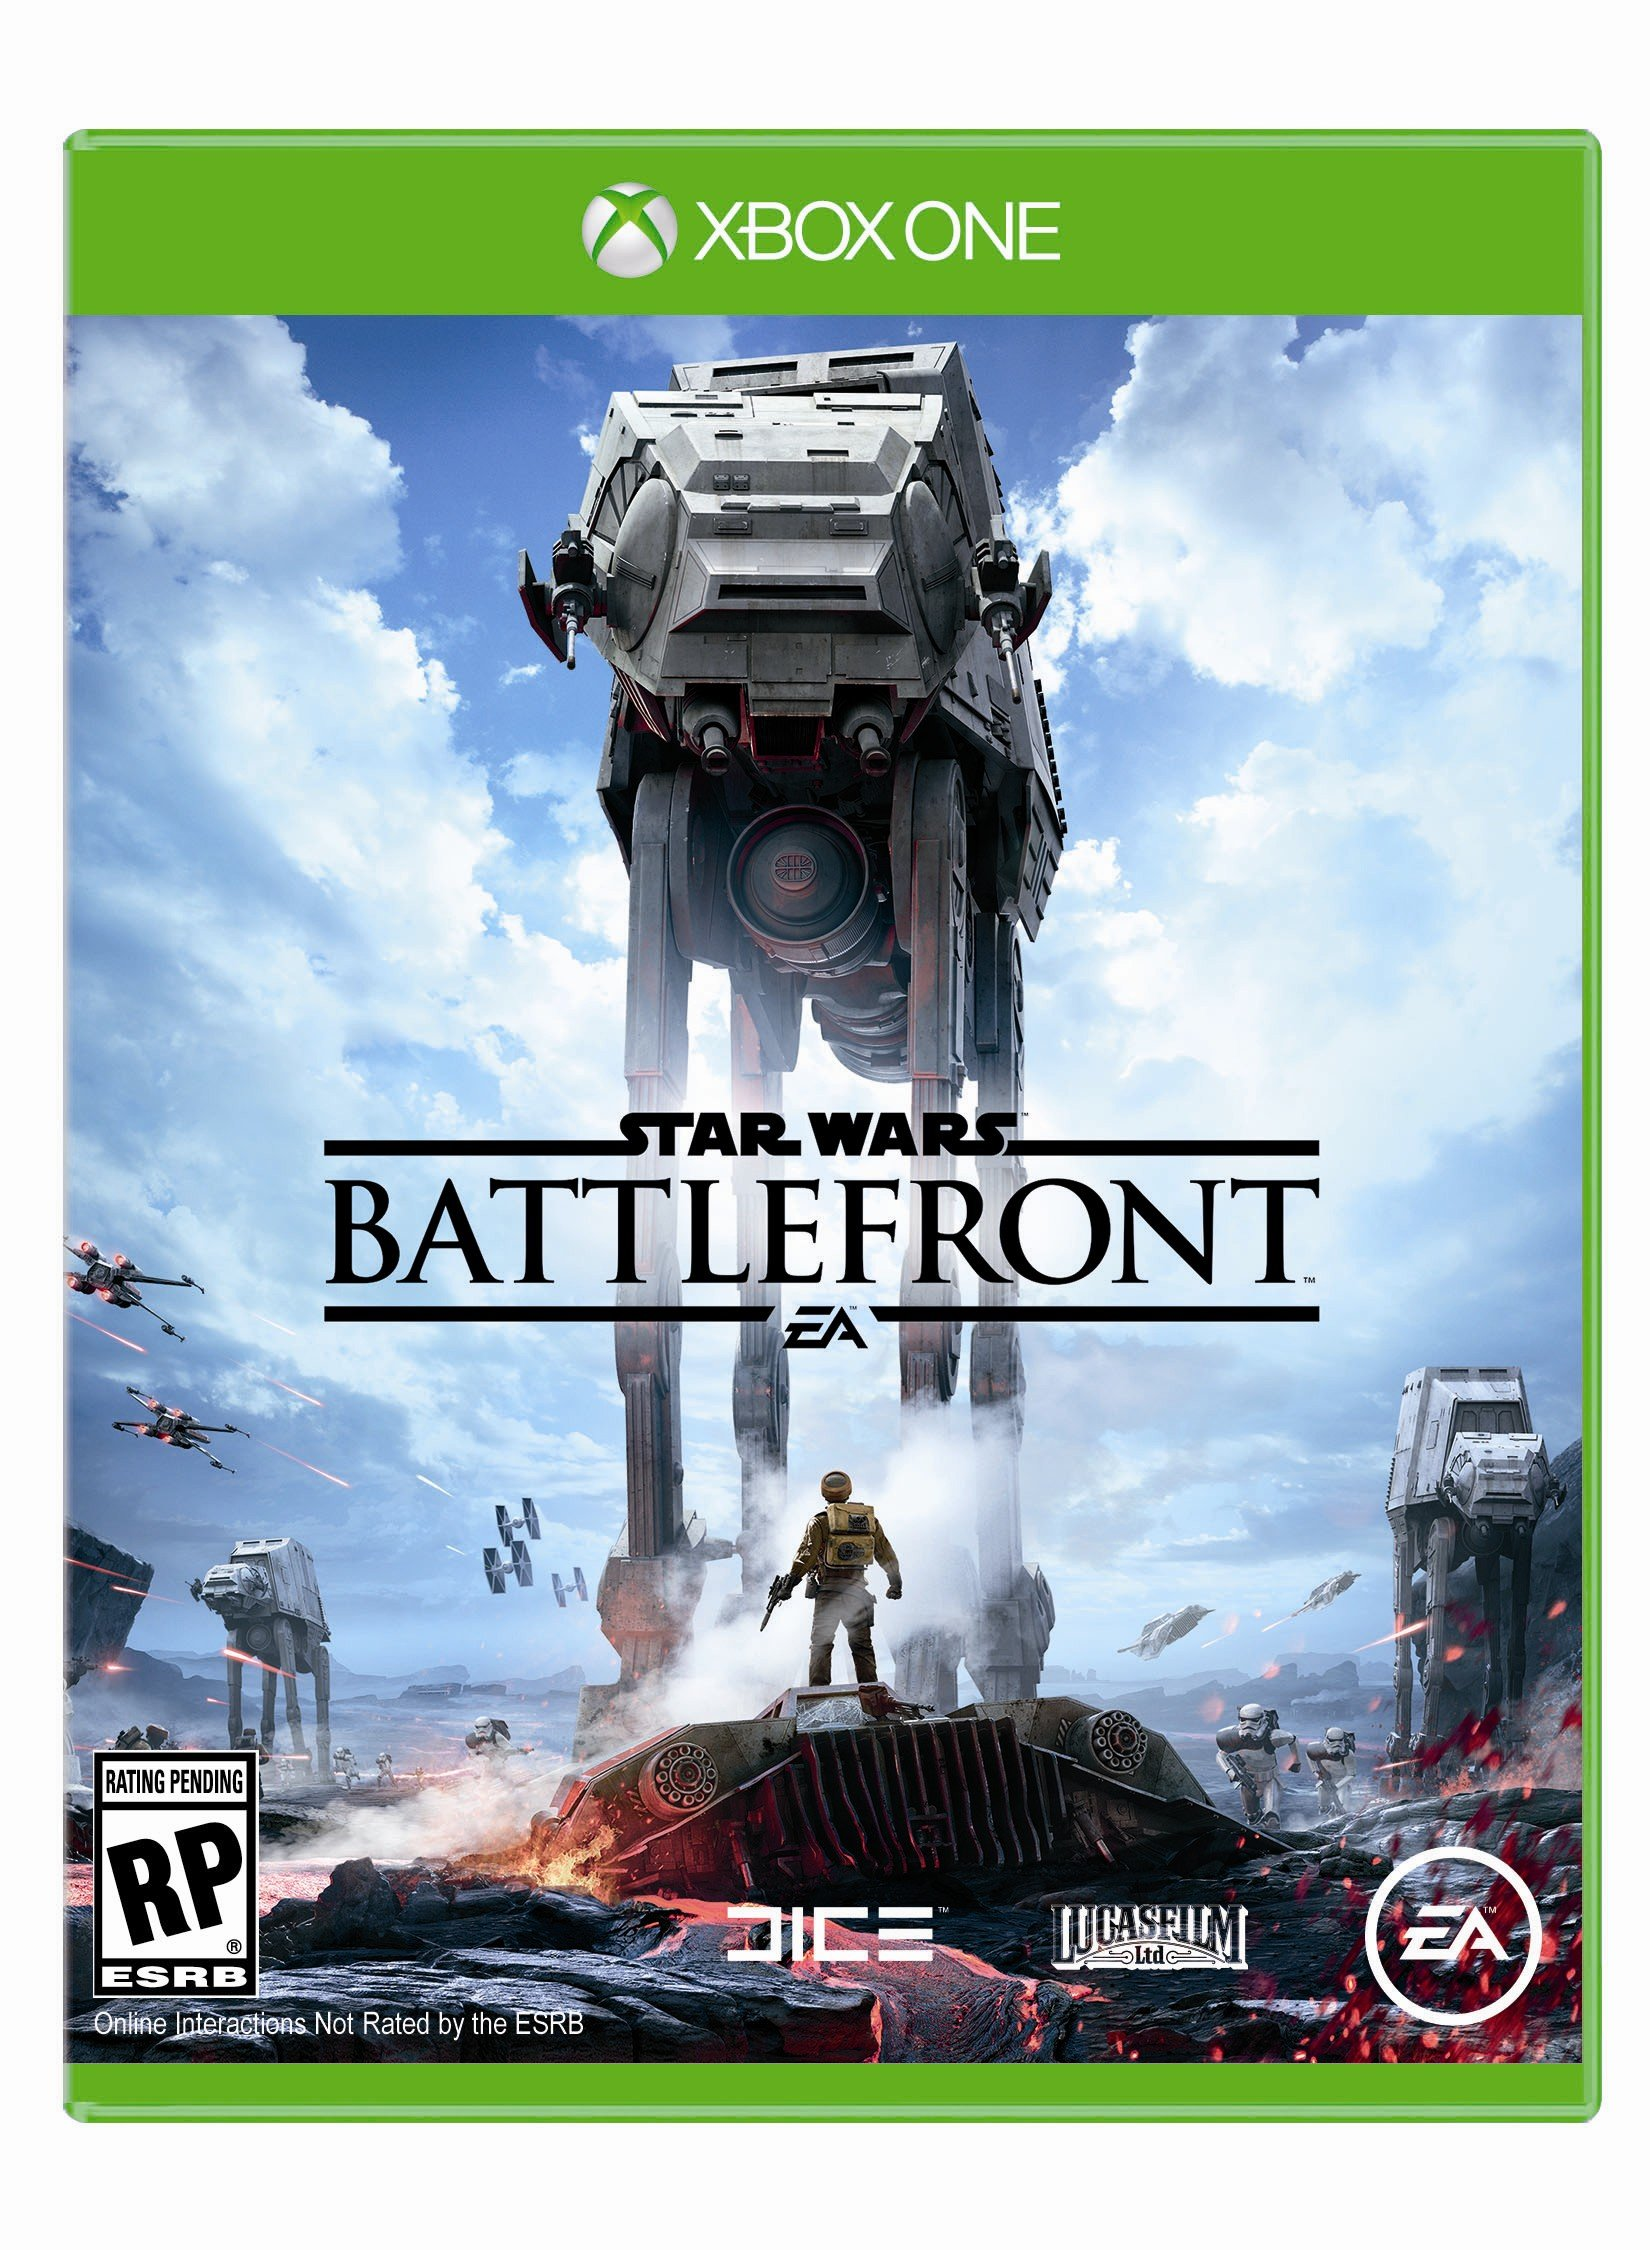 Box art - Star Wars: Battlefront (2015),Star Wars: Battlefront (2014)